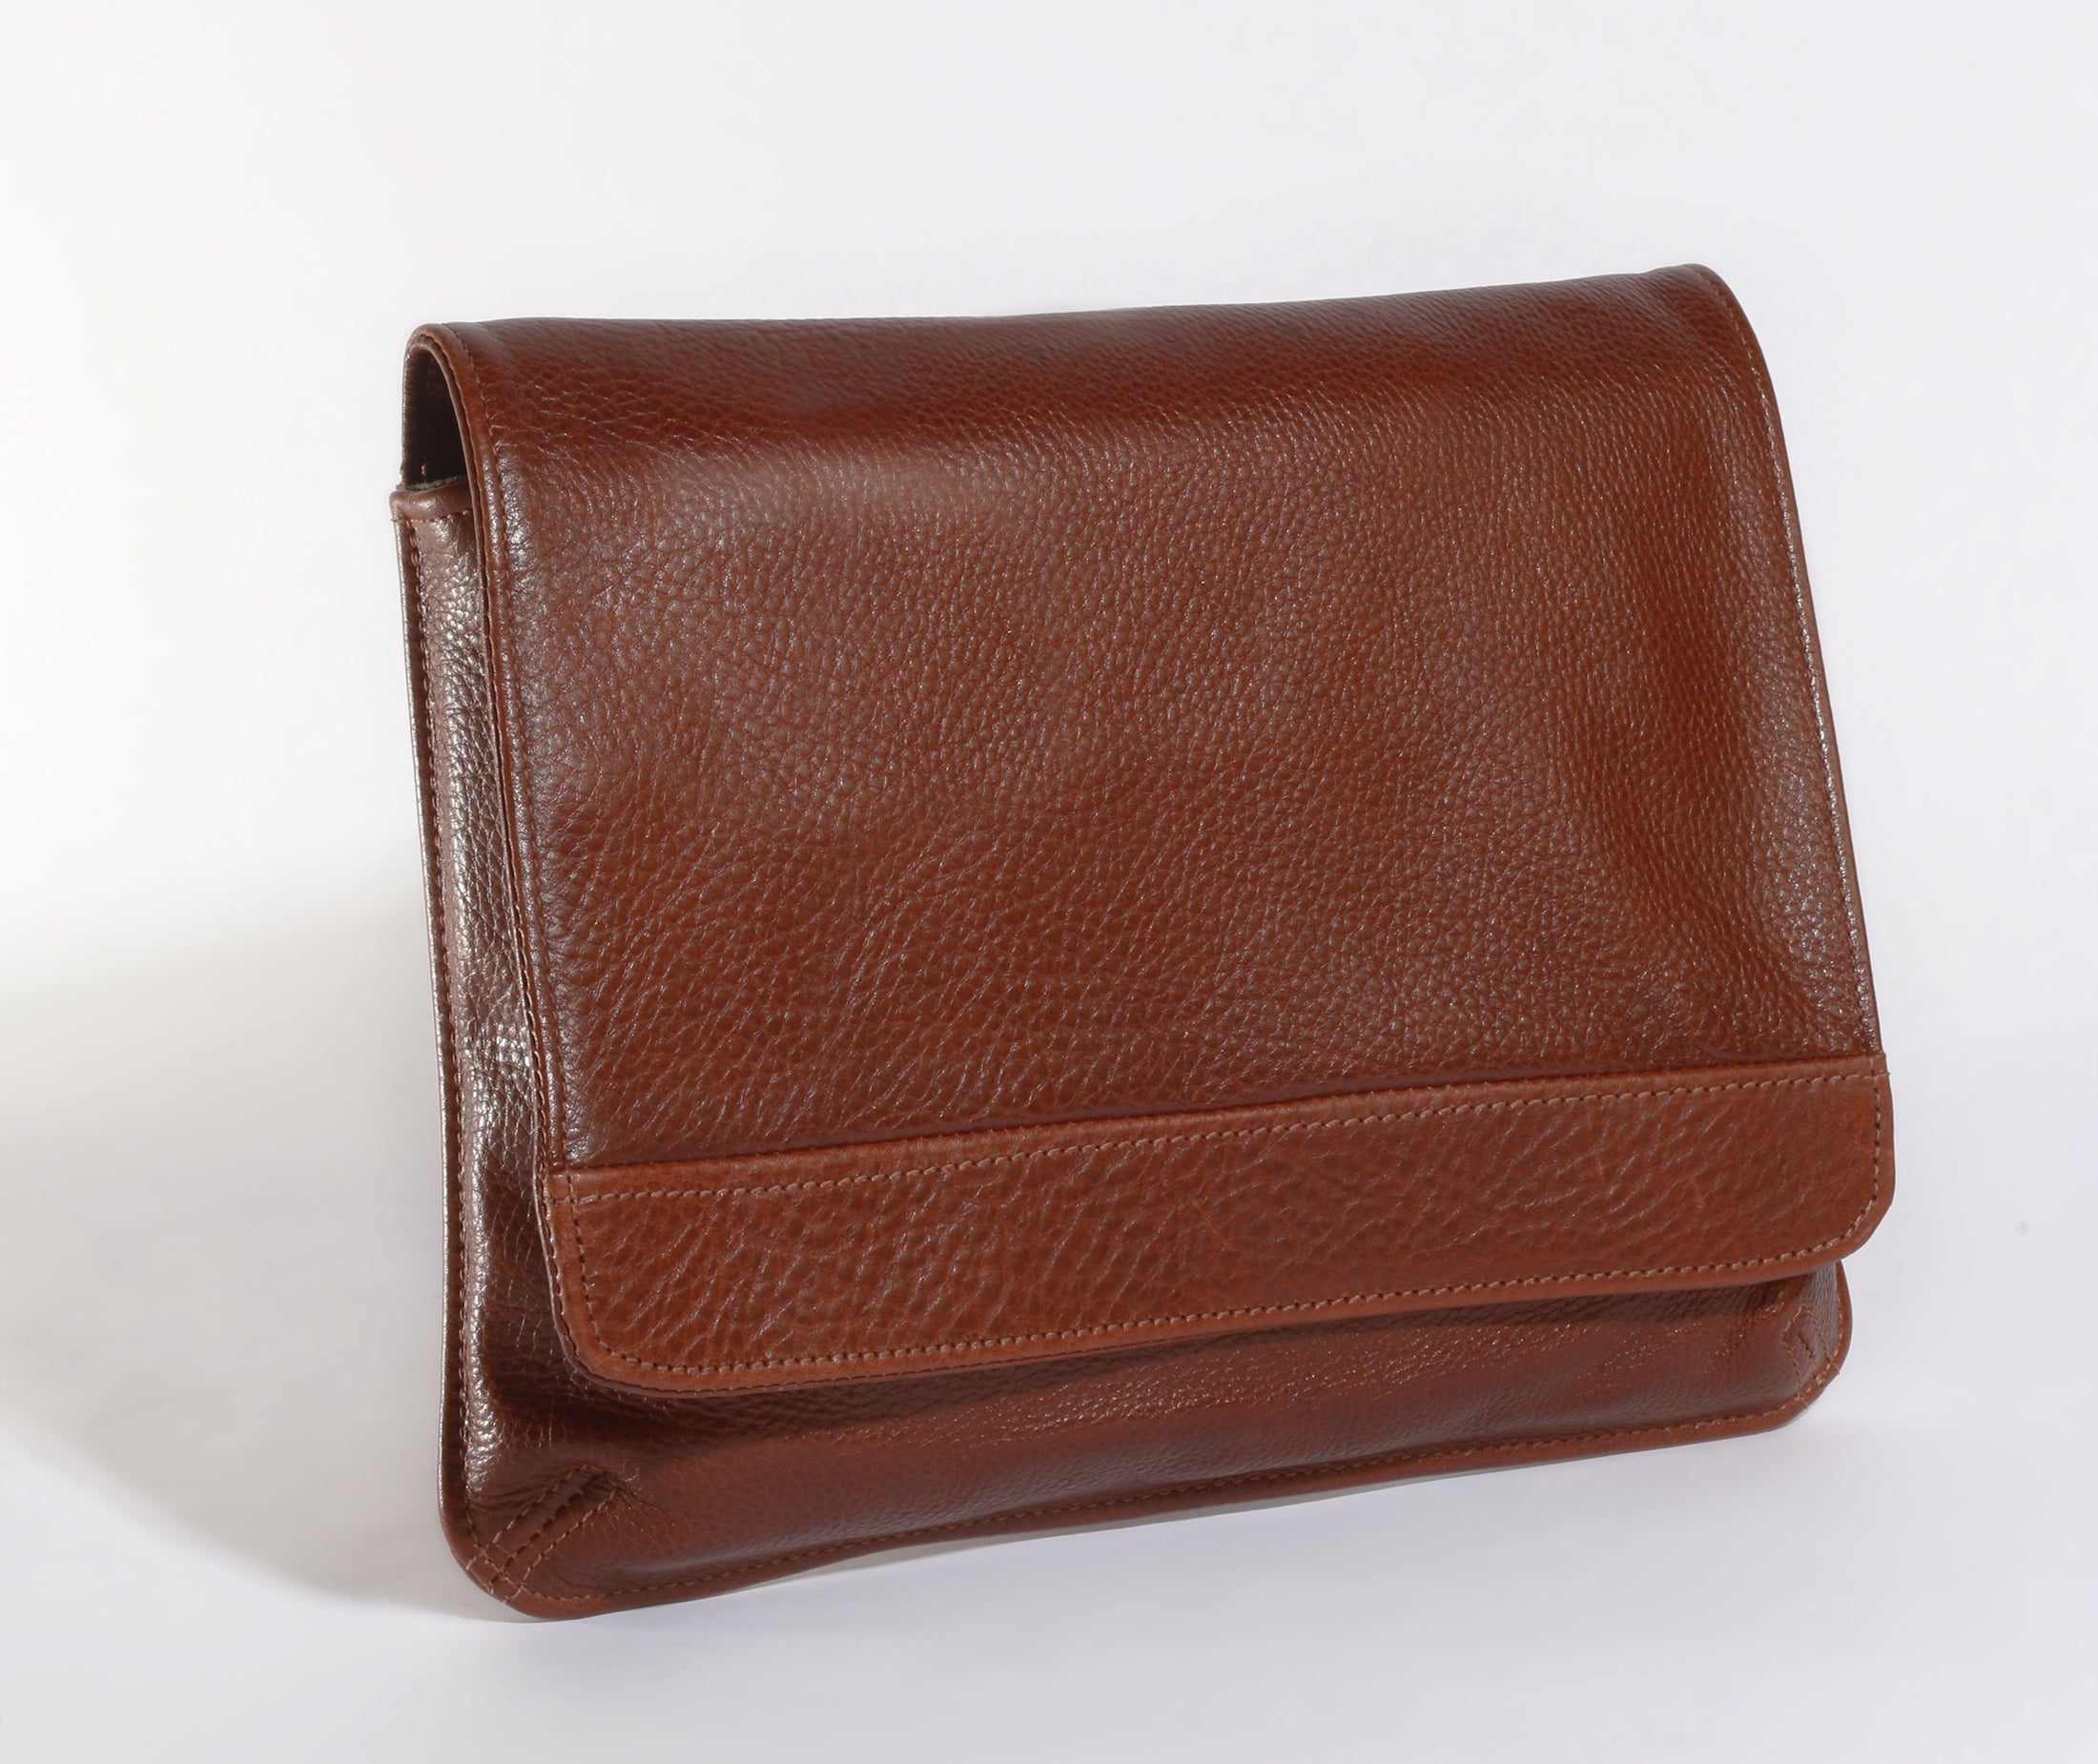 Luxury Leather iPad Case made in the USA